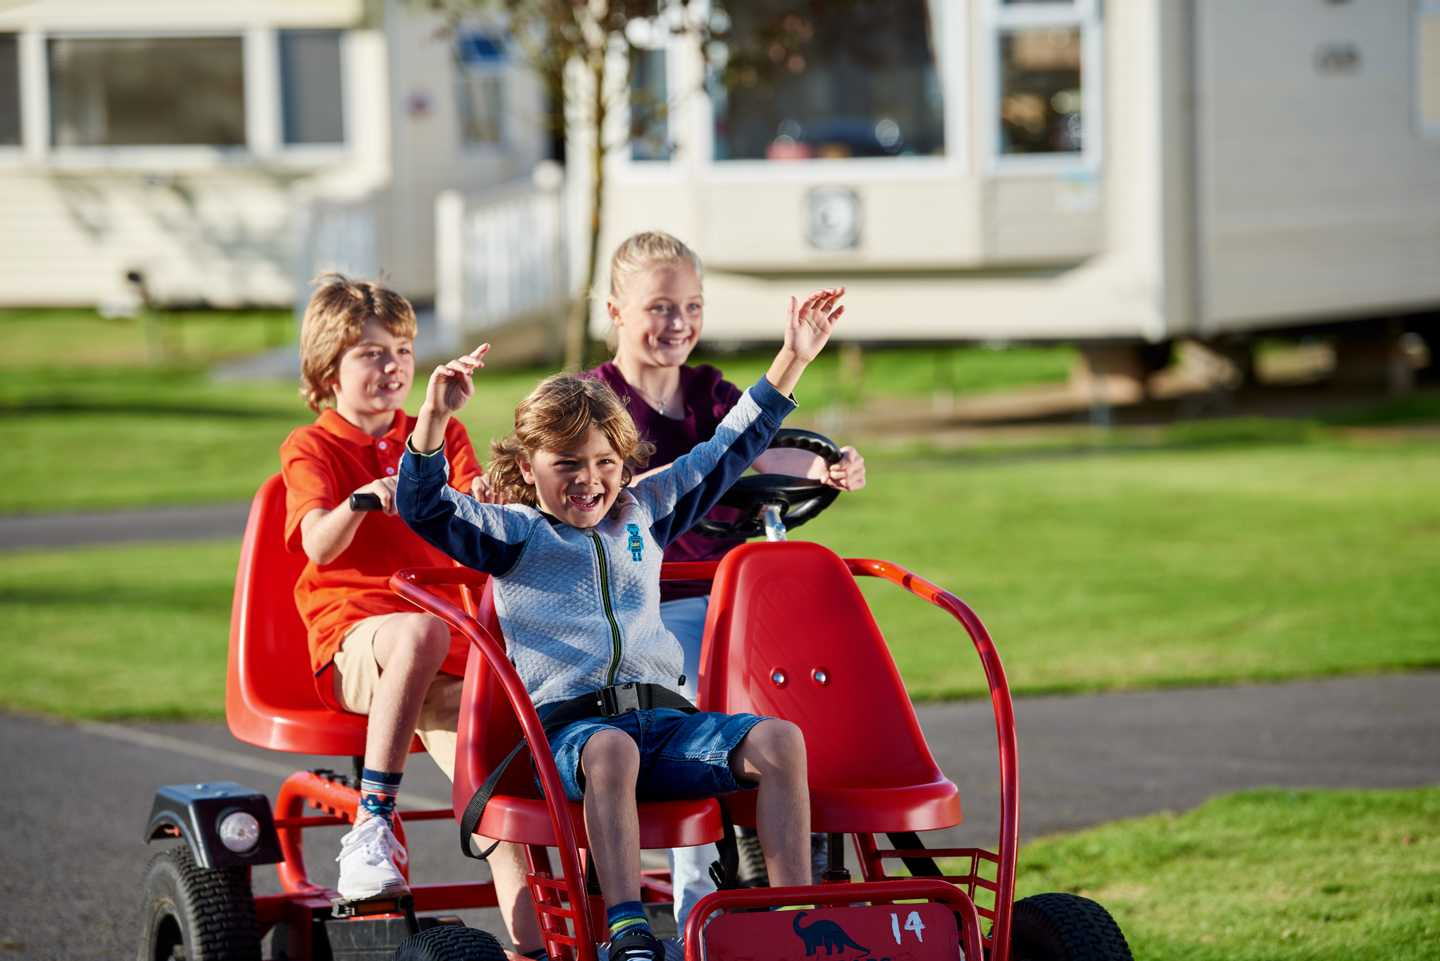 Children riding around the park in a hired kart